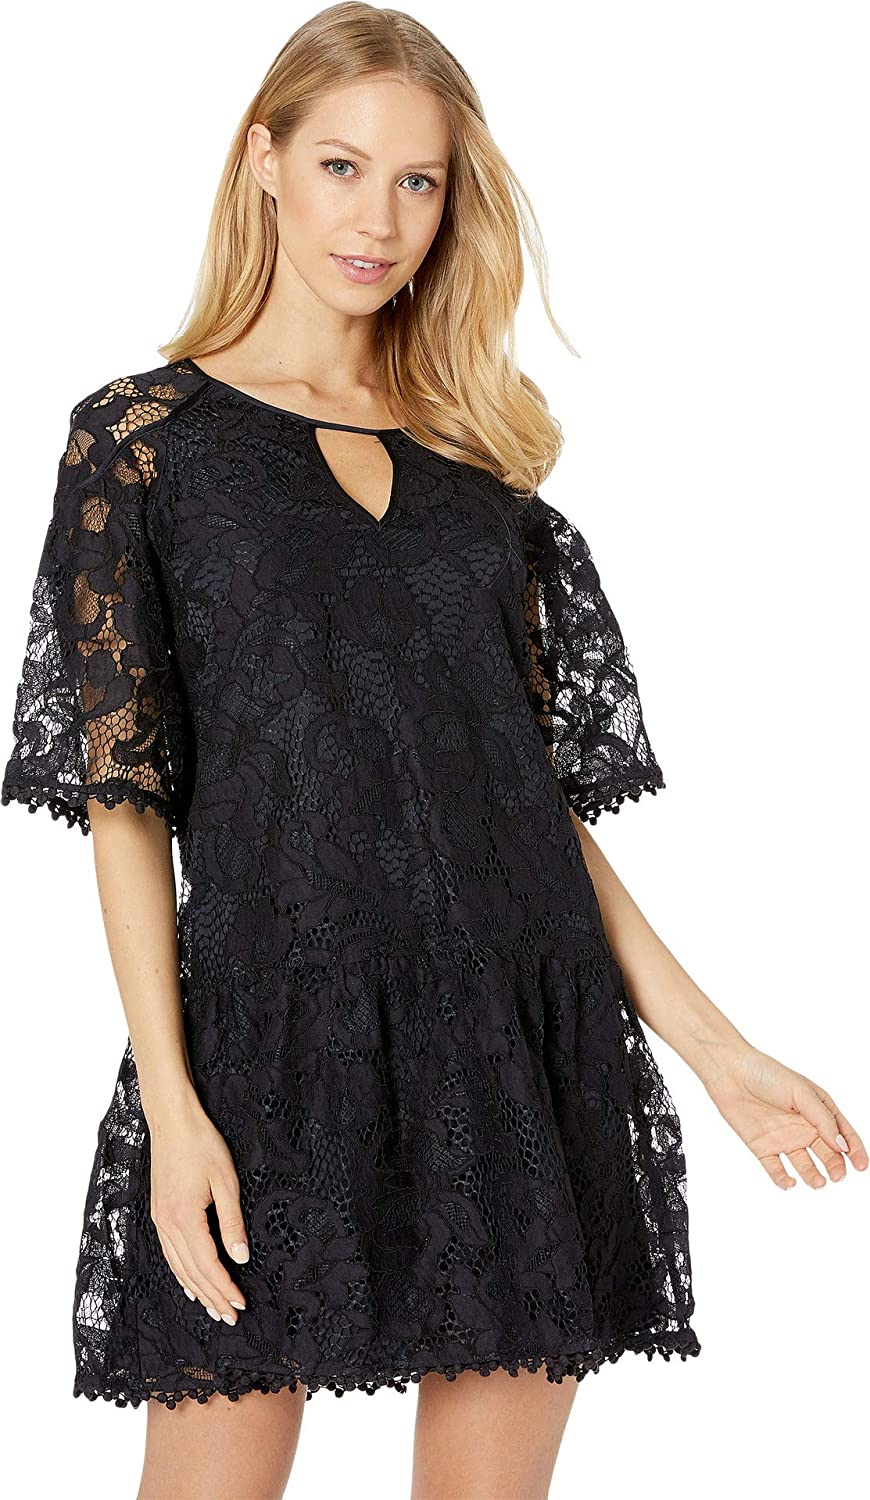 Zenith Large Juicy Couture Black Label Womens Hibiscus Lace Flounce Sleeves Party Dress